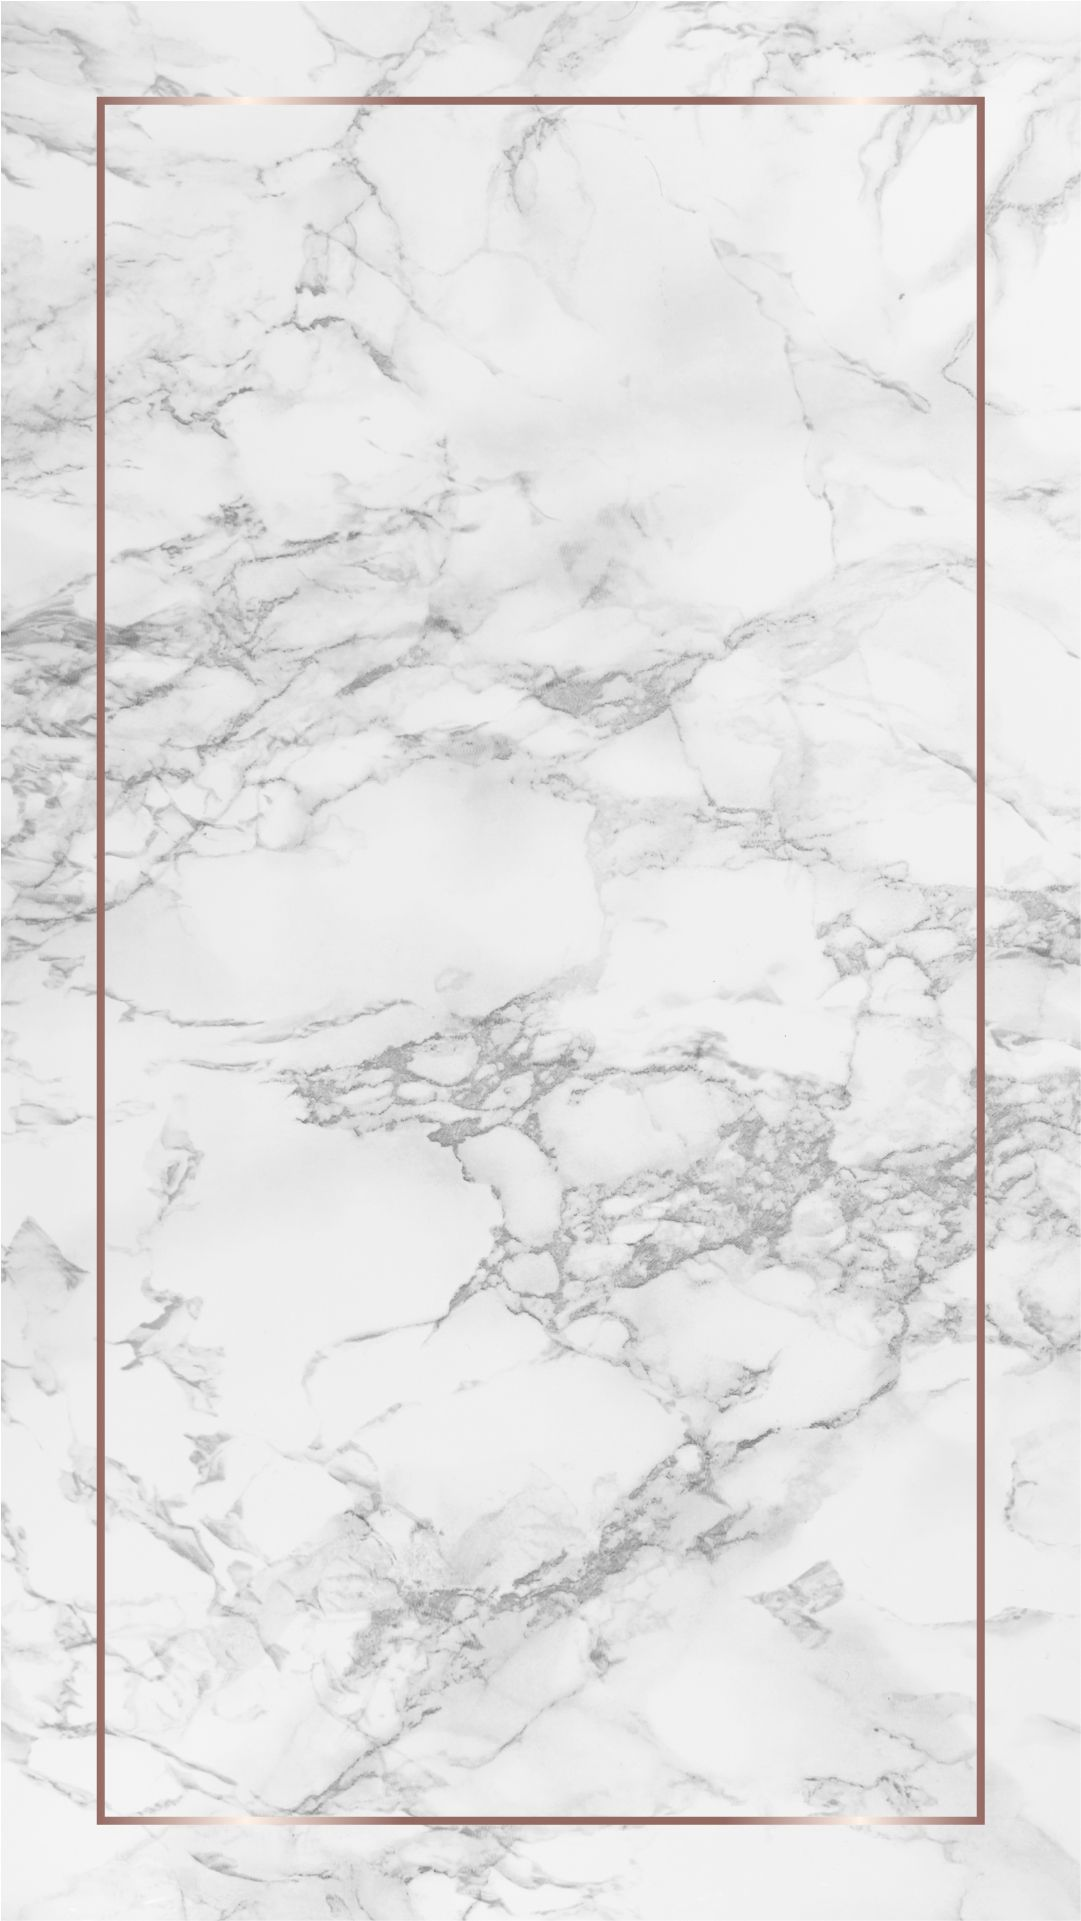 Marble and rose gold geometric phone wallpapers - The Blooming Journal